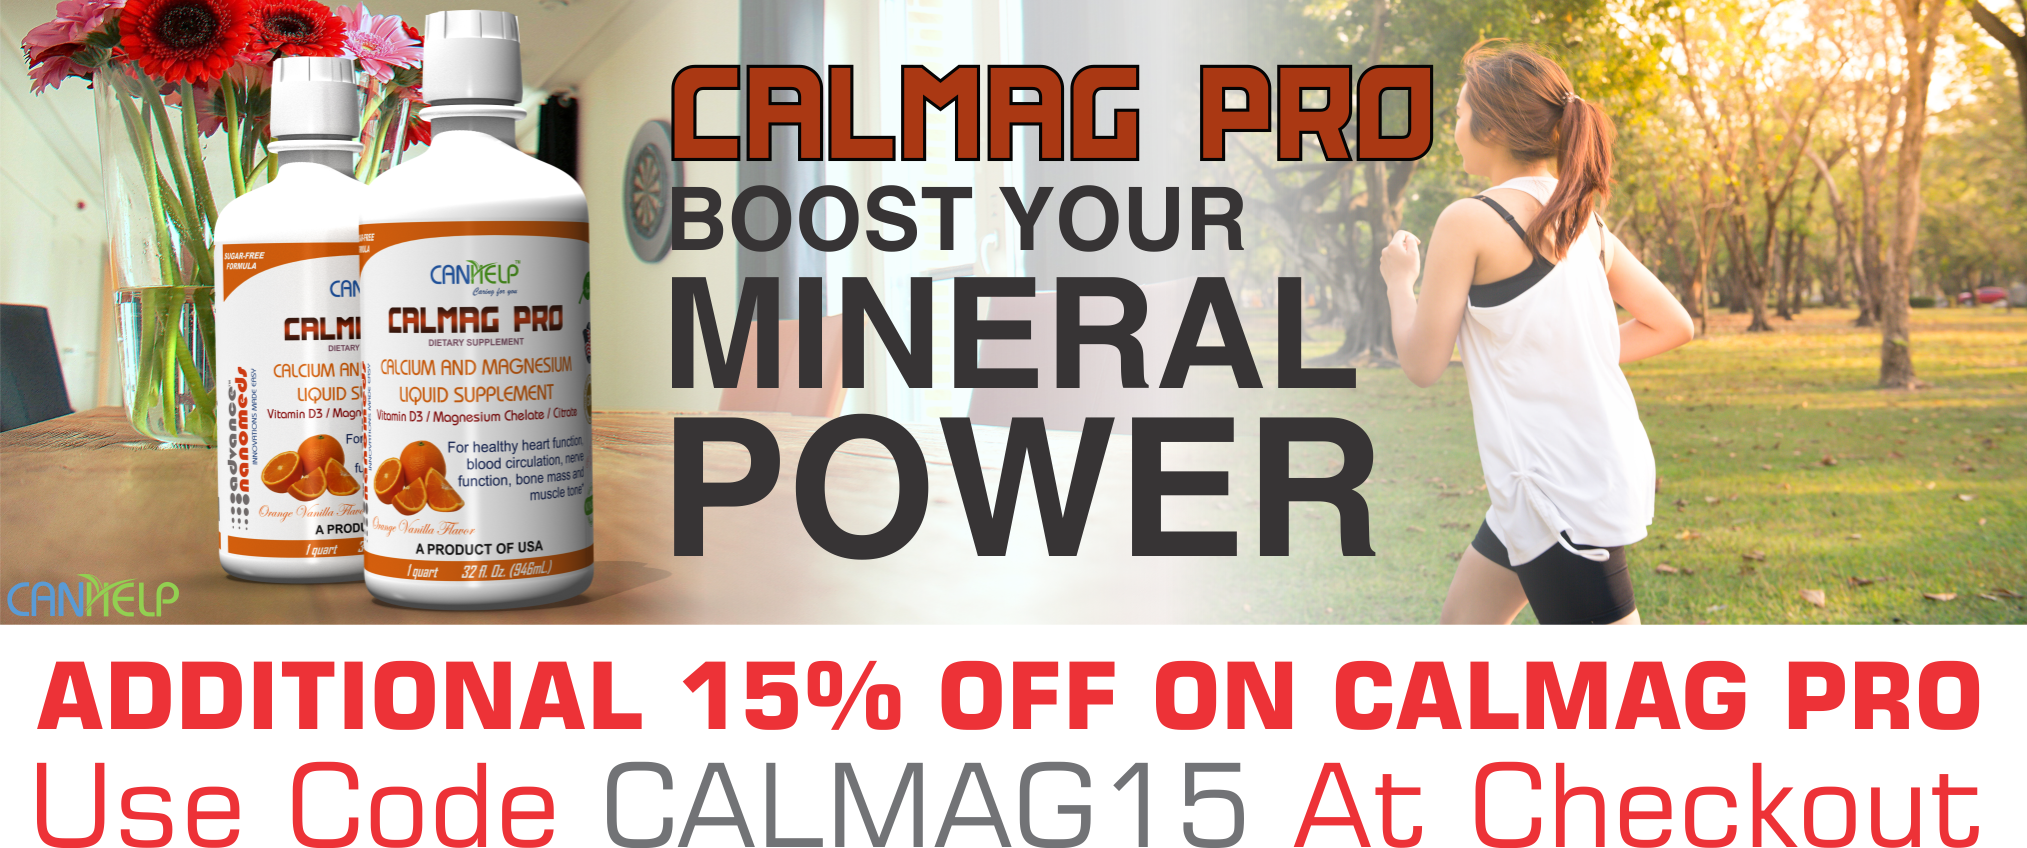 15% OFF ON CALMAGPRO-CALMAG SUPPLEMENT-CALCIUM-MAGNESIUM-MINERALS-VITAMINS